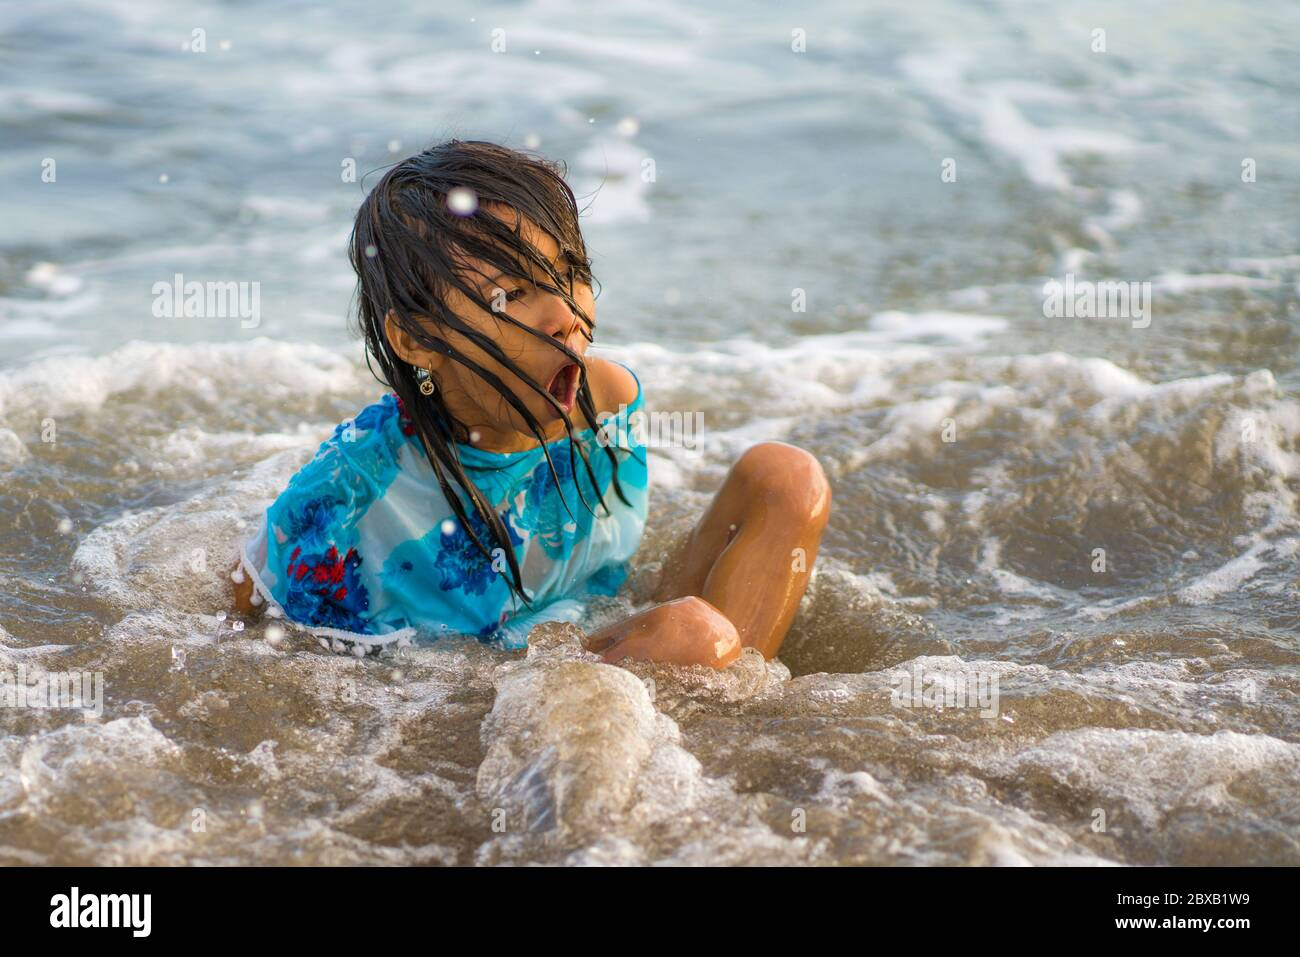 lifestyle candid portrait of young happy and excited child girl having fun at the beach swimming playing with sea waves enjoying crazy feeling free in Stock Photo